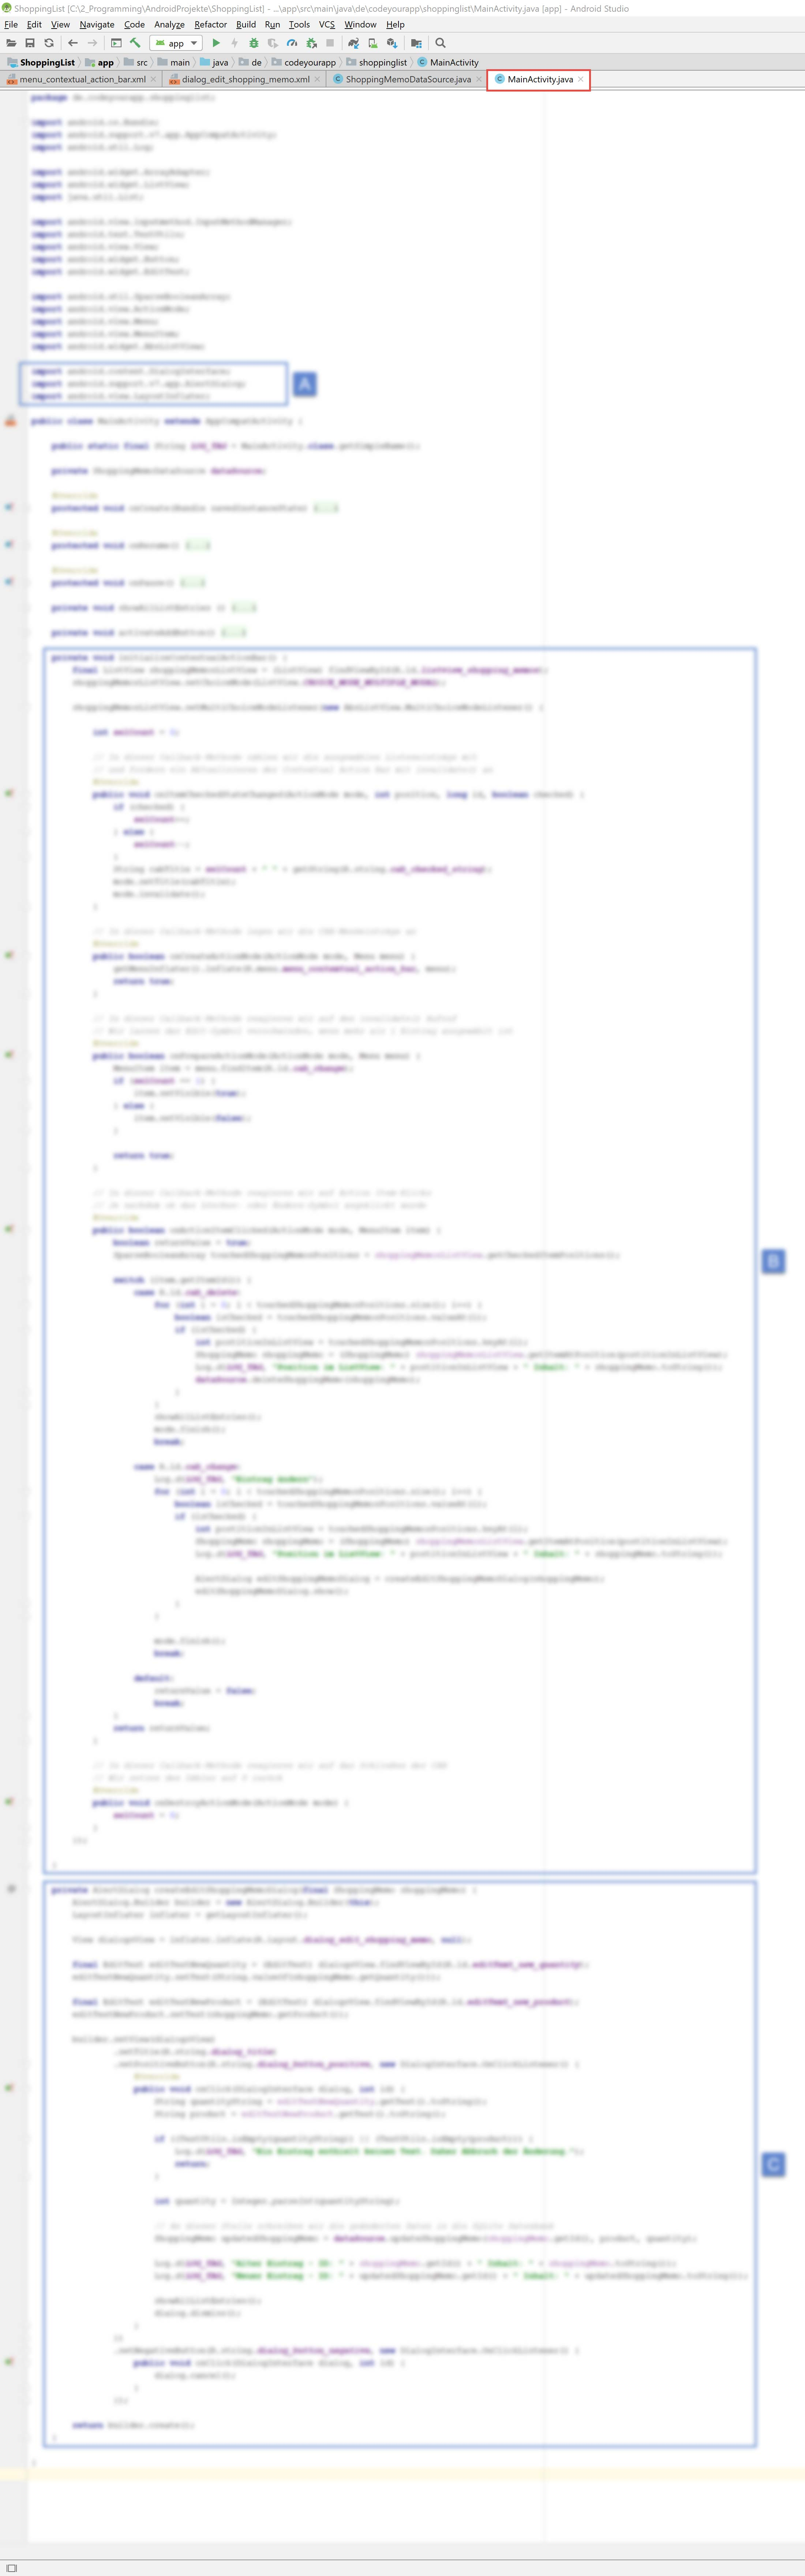 android_sqlite_lektion7_blurry